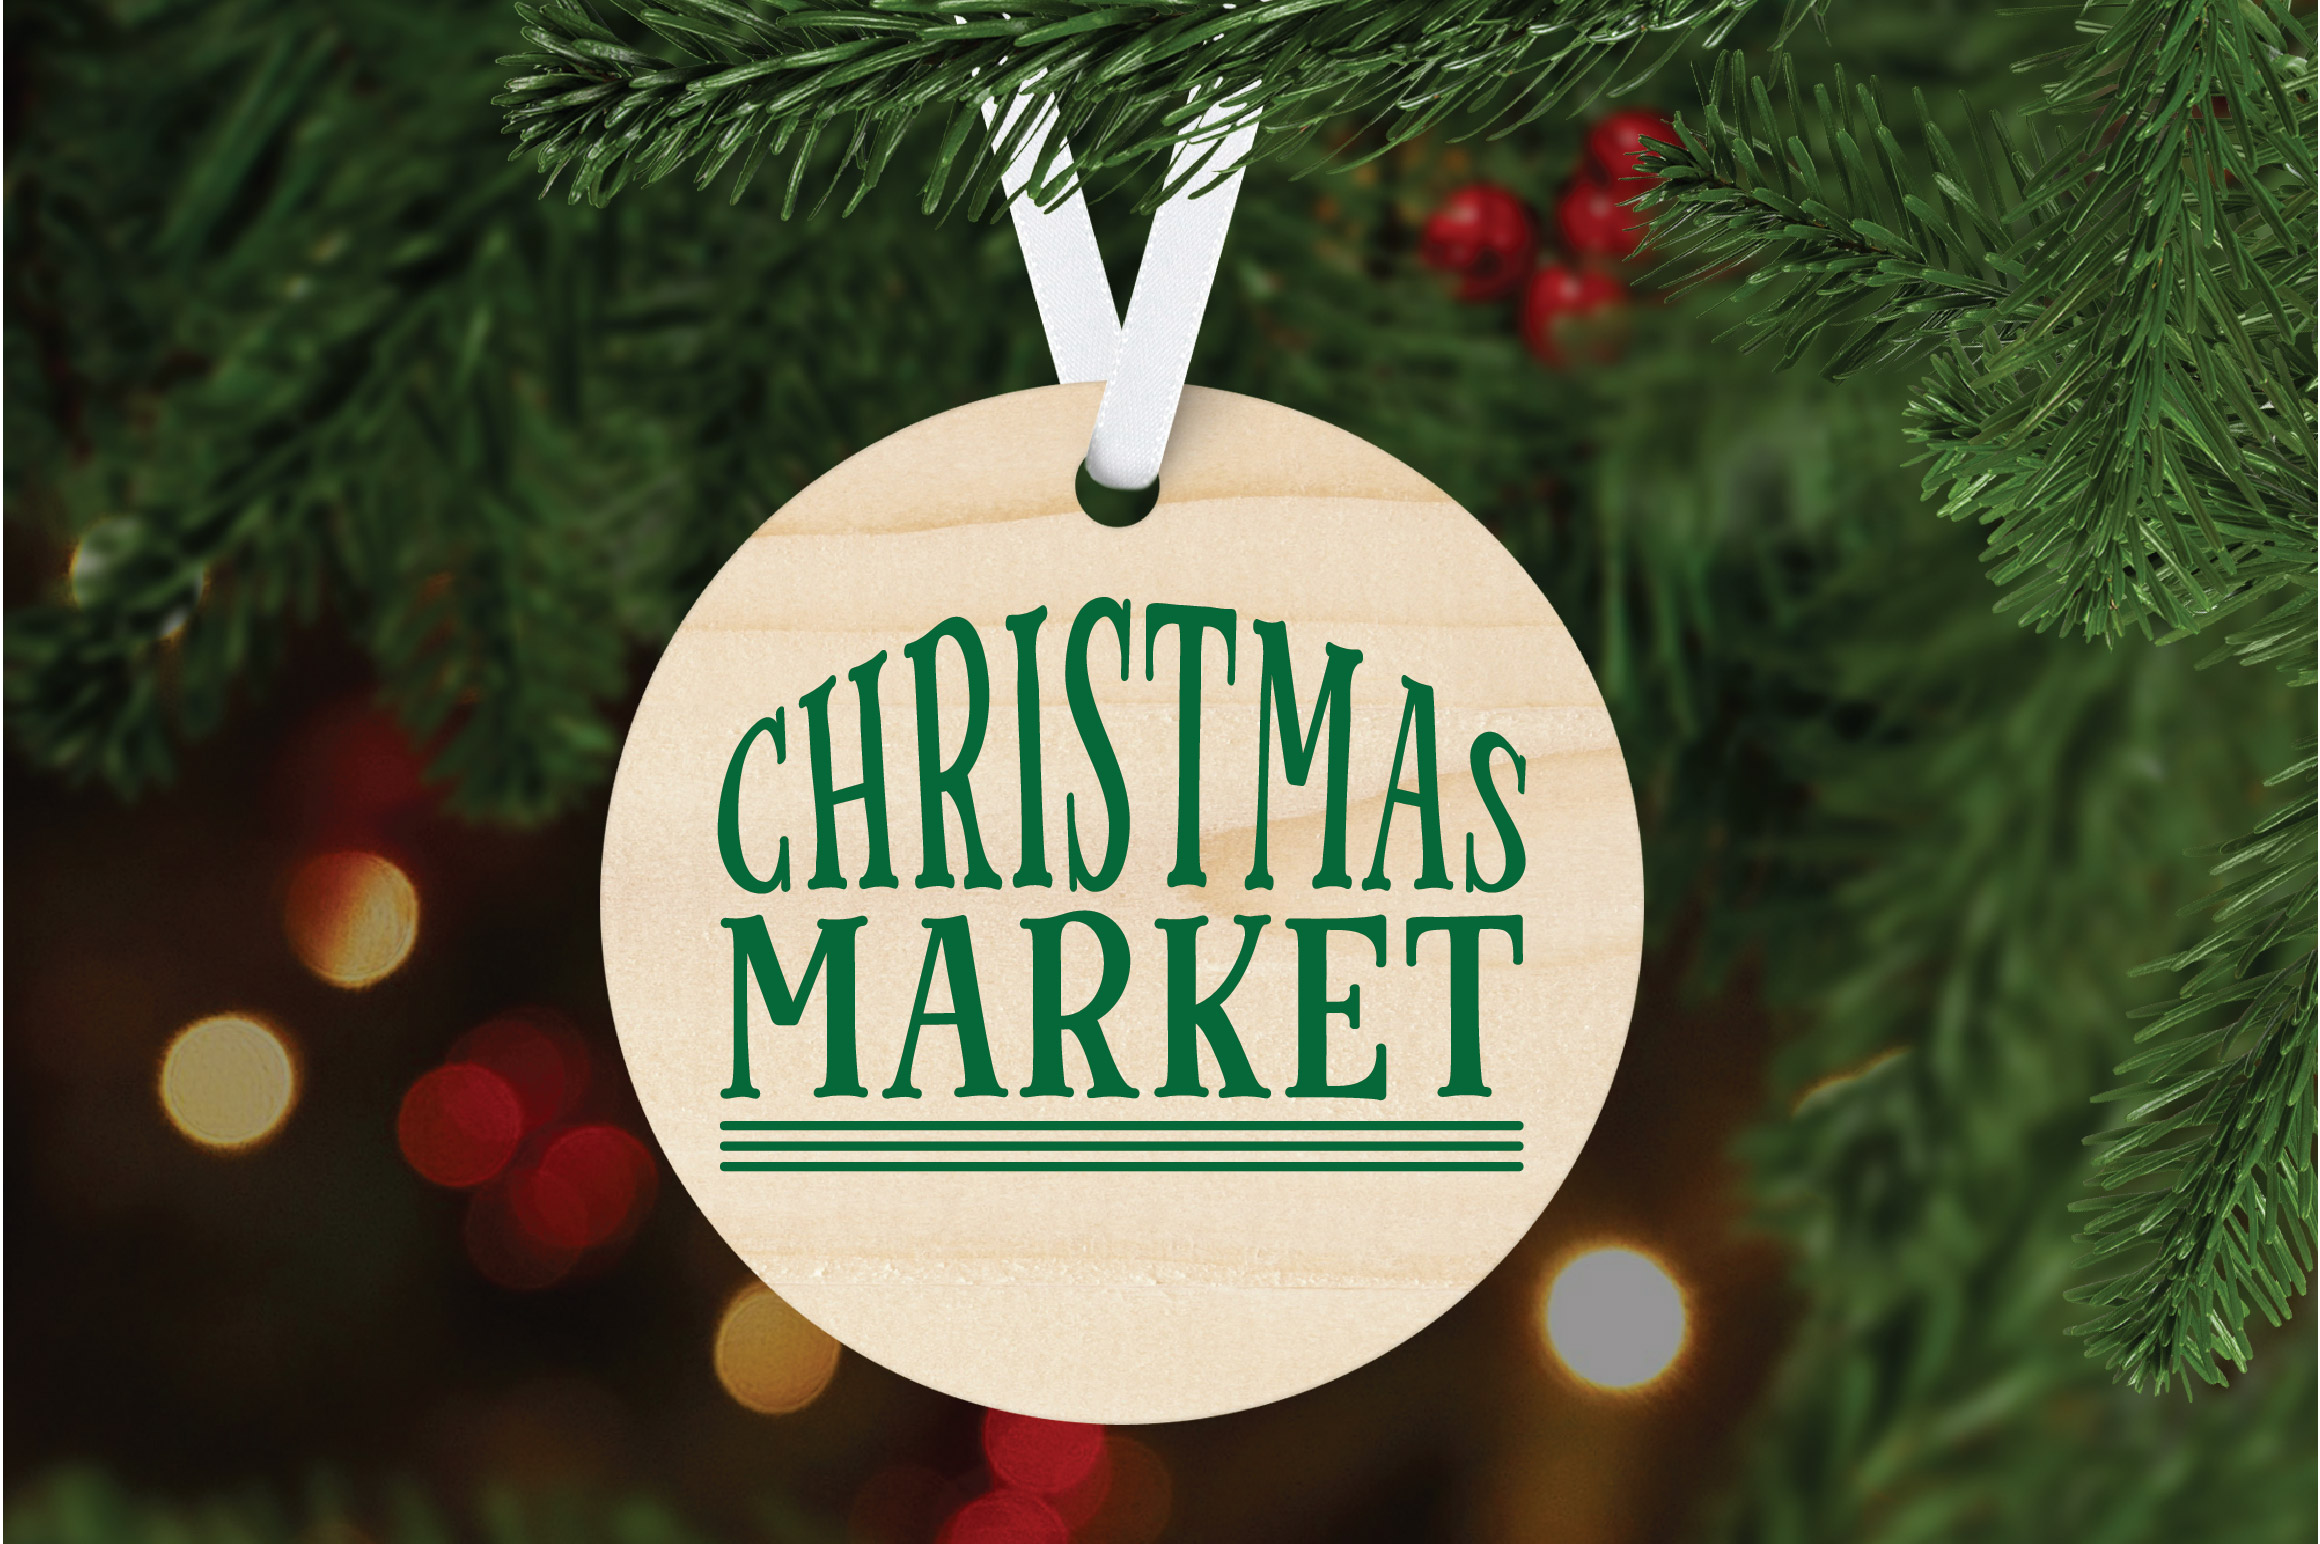 Christmas SVG Cut File - Christmas Market SVG DXF PNG EPS example image 6